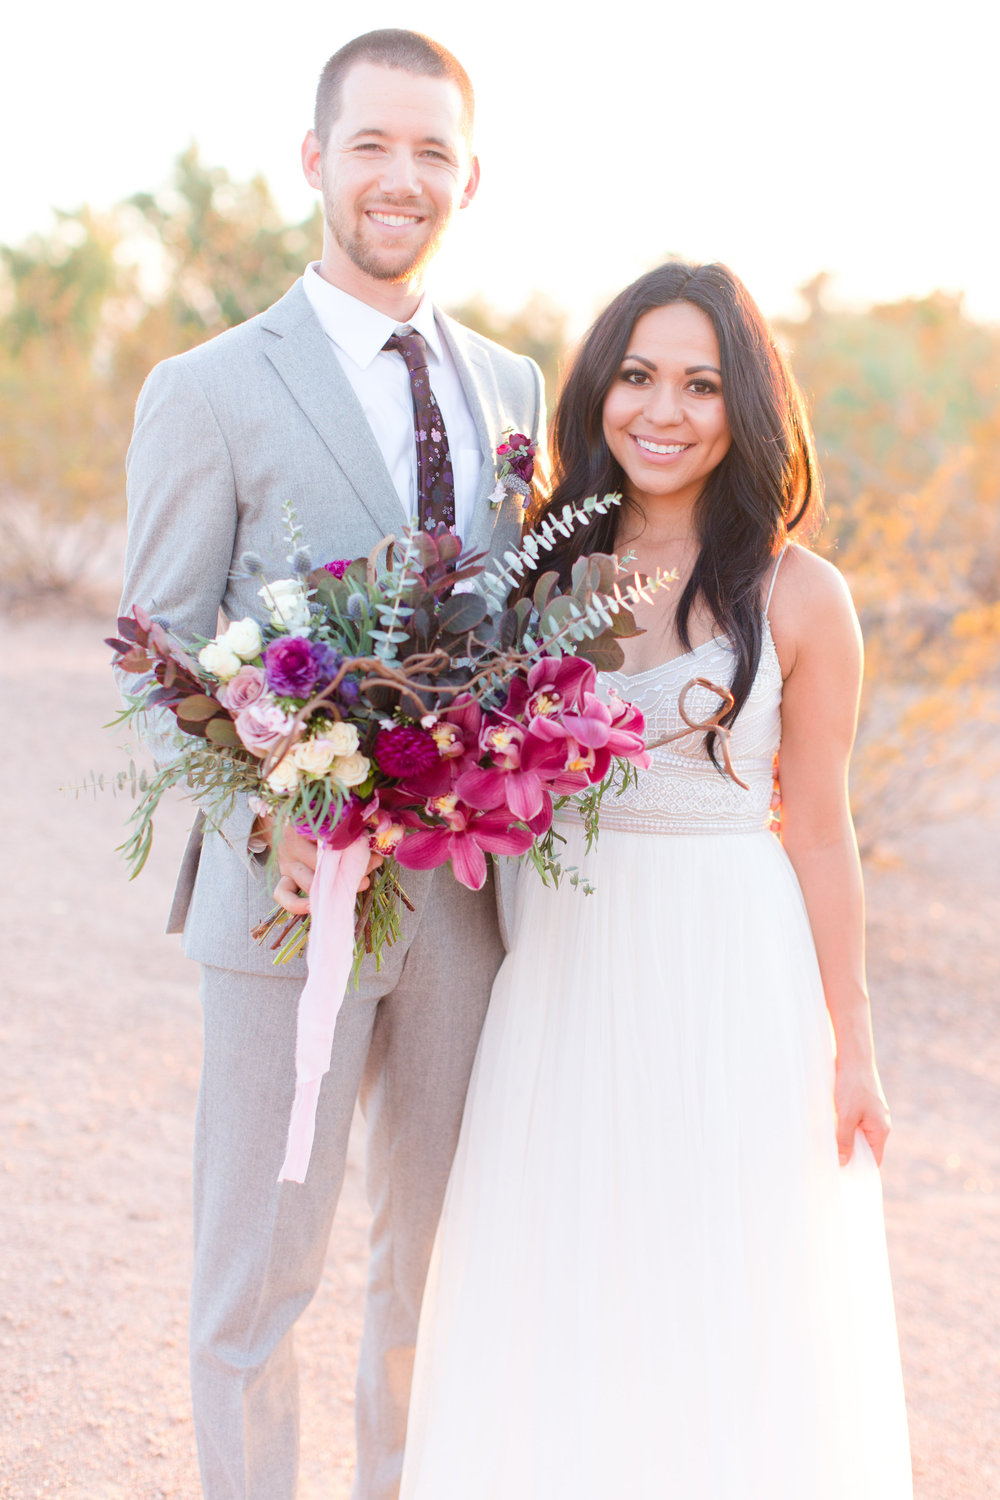 Amy & Jordan Workshop - Purple Anthropologie Inspired Wedding